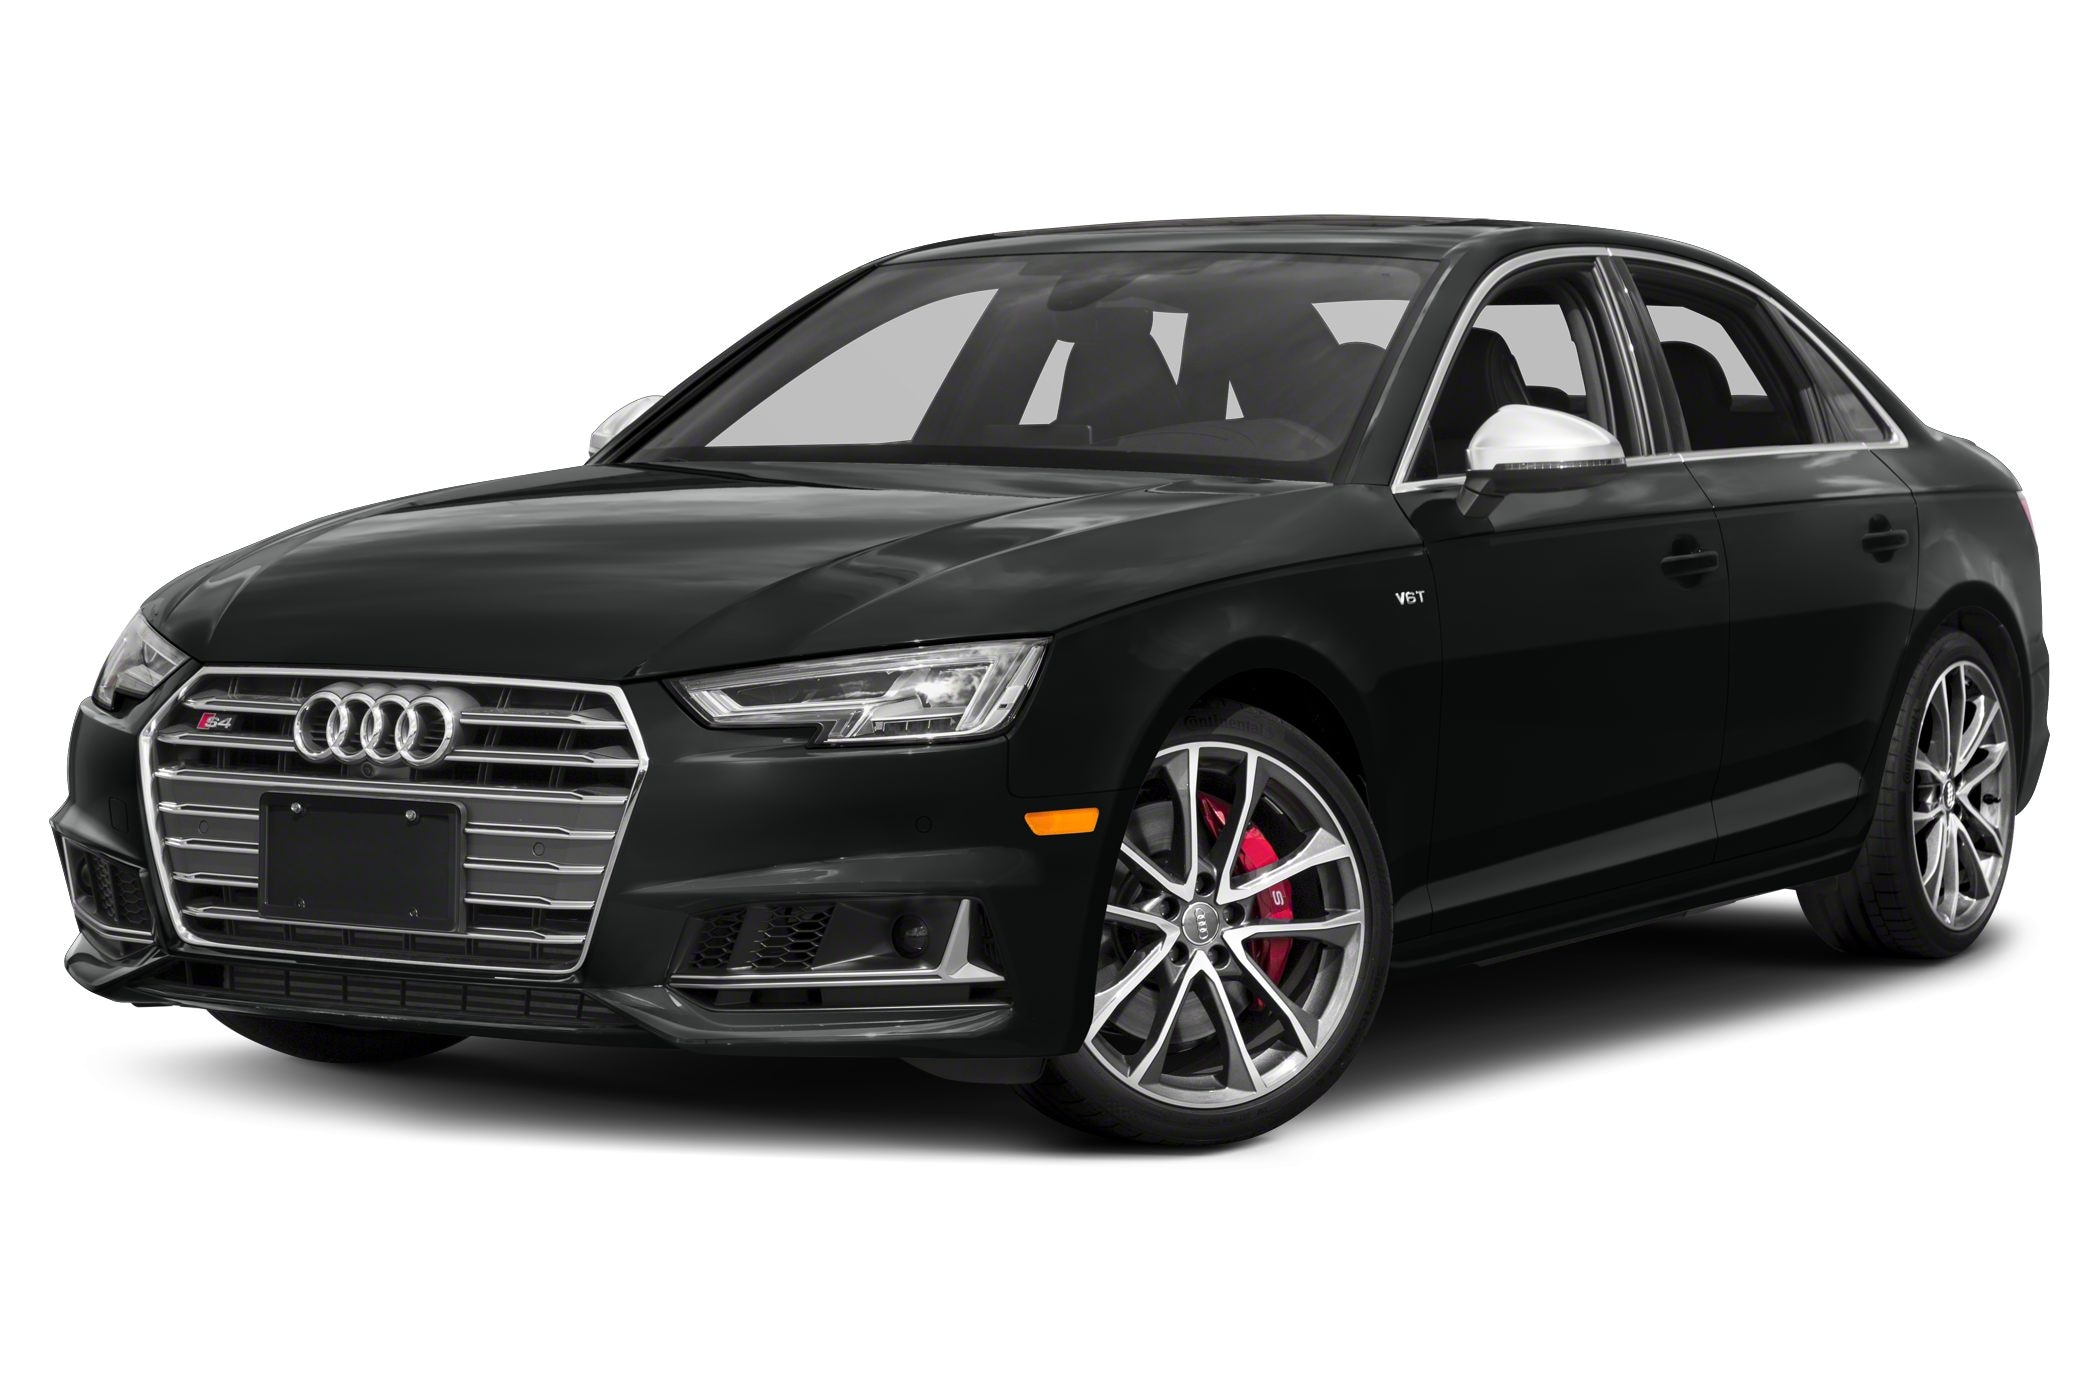 Audi S4 Lease Deals – Lamoureph Blog